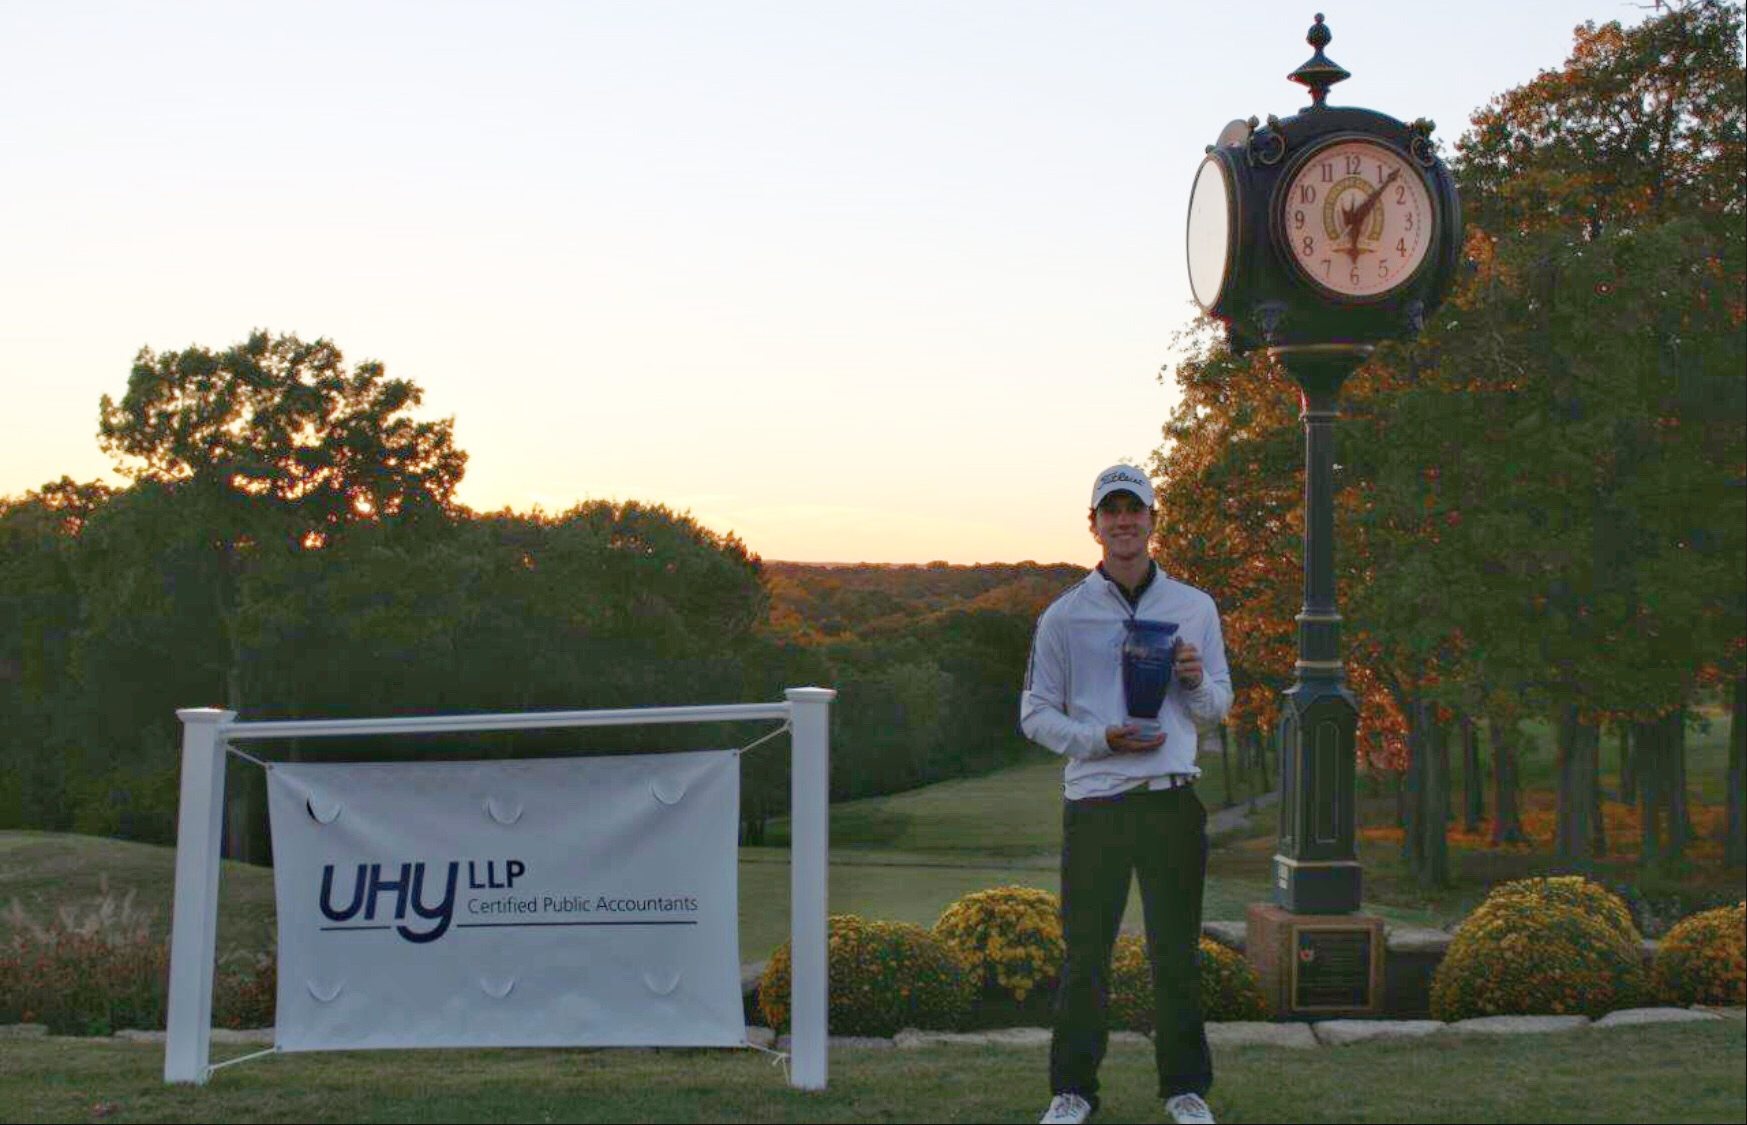 Lutheran South's Zach Shirley was champion shooting 74-71 for a one over part total of 145. Round 1 was played in extremely difficult conditions with 20+ mph sustained winds throughout the round.